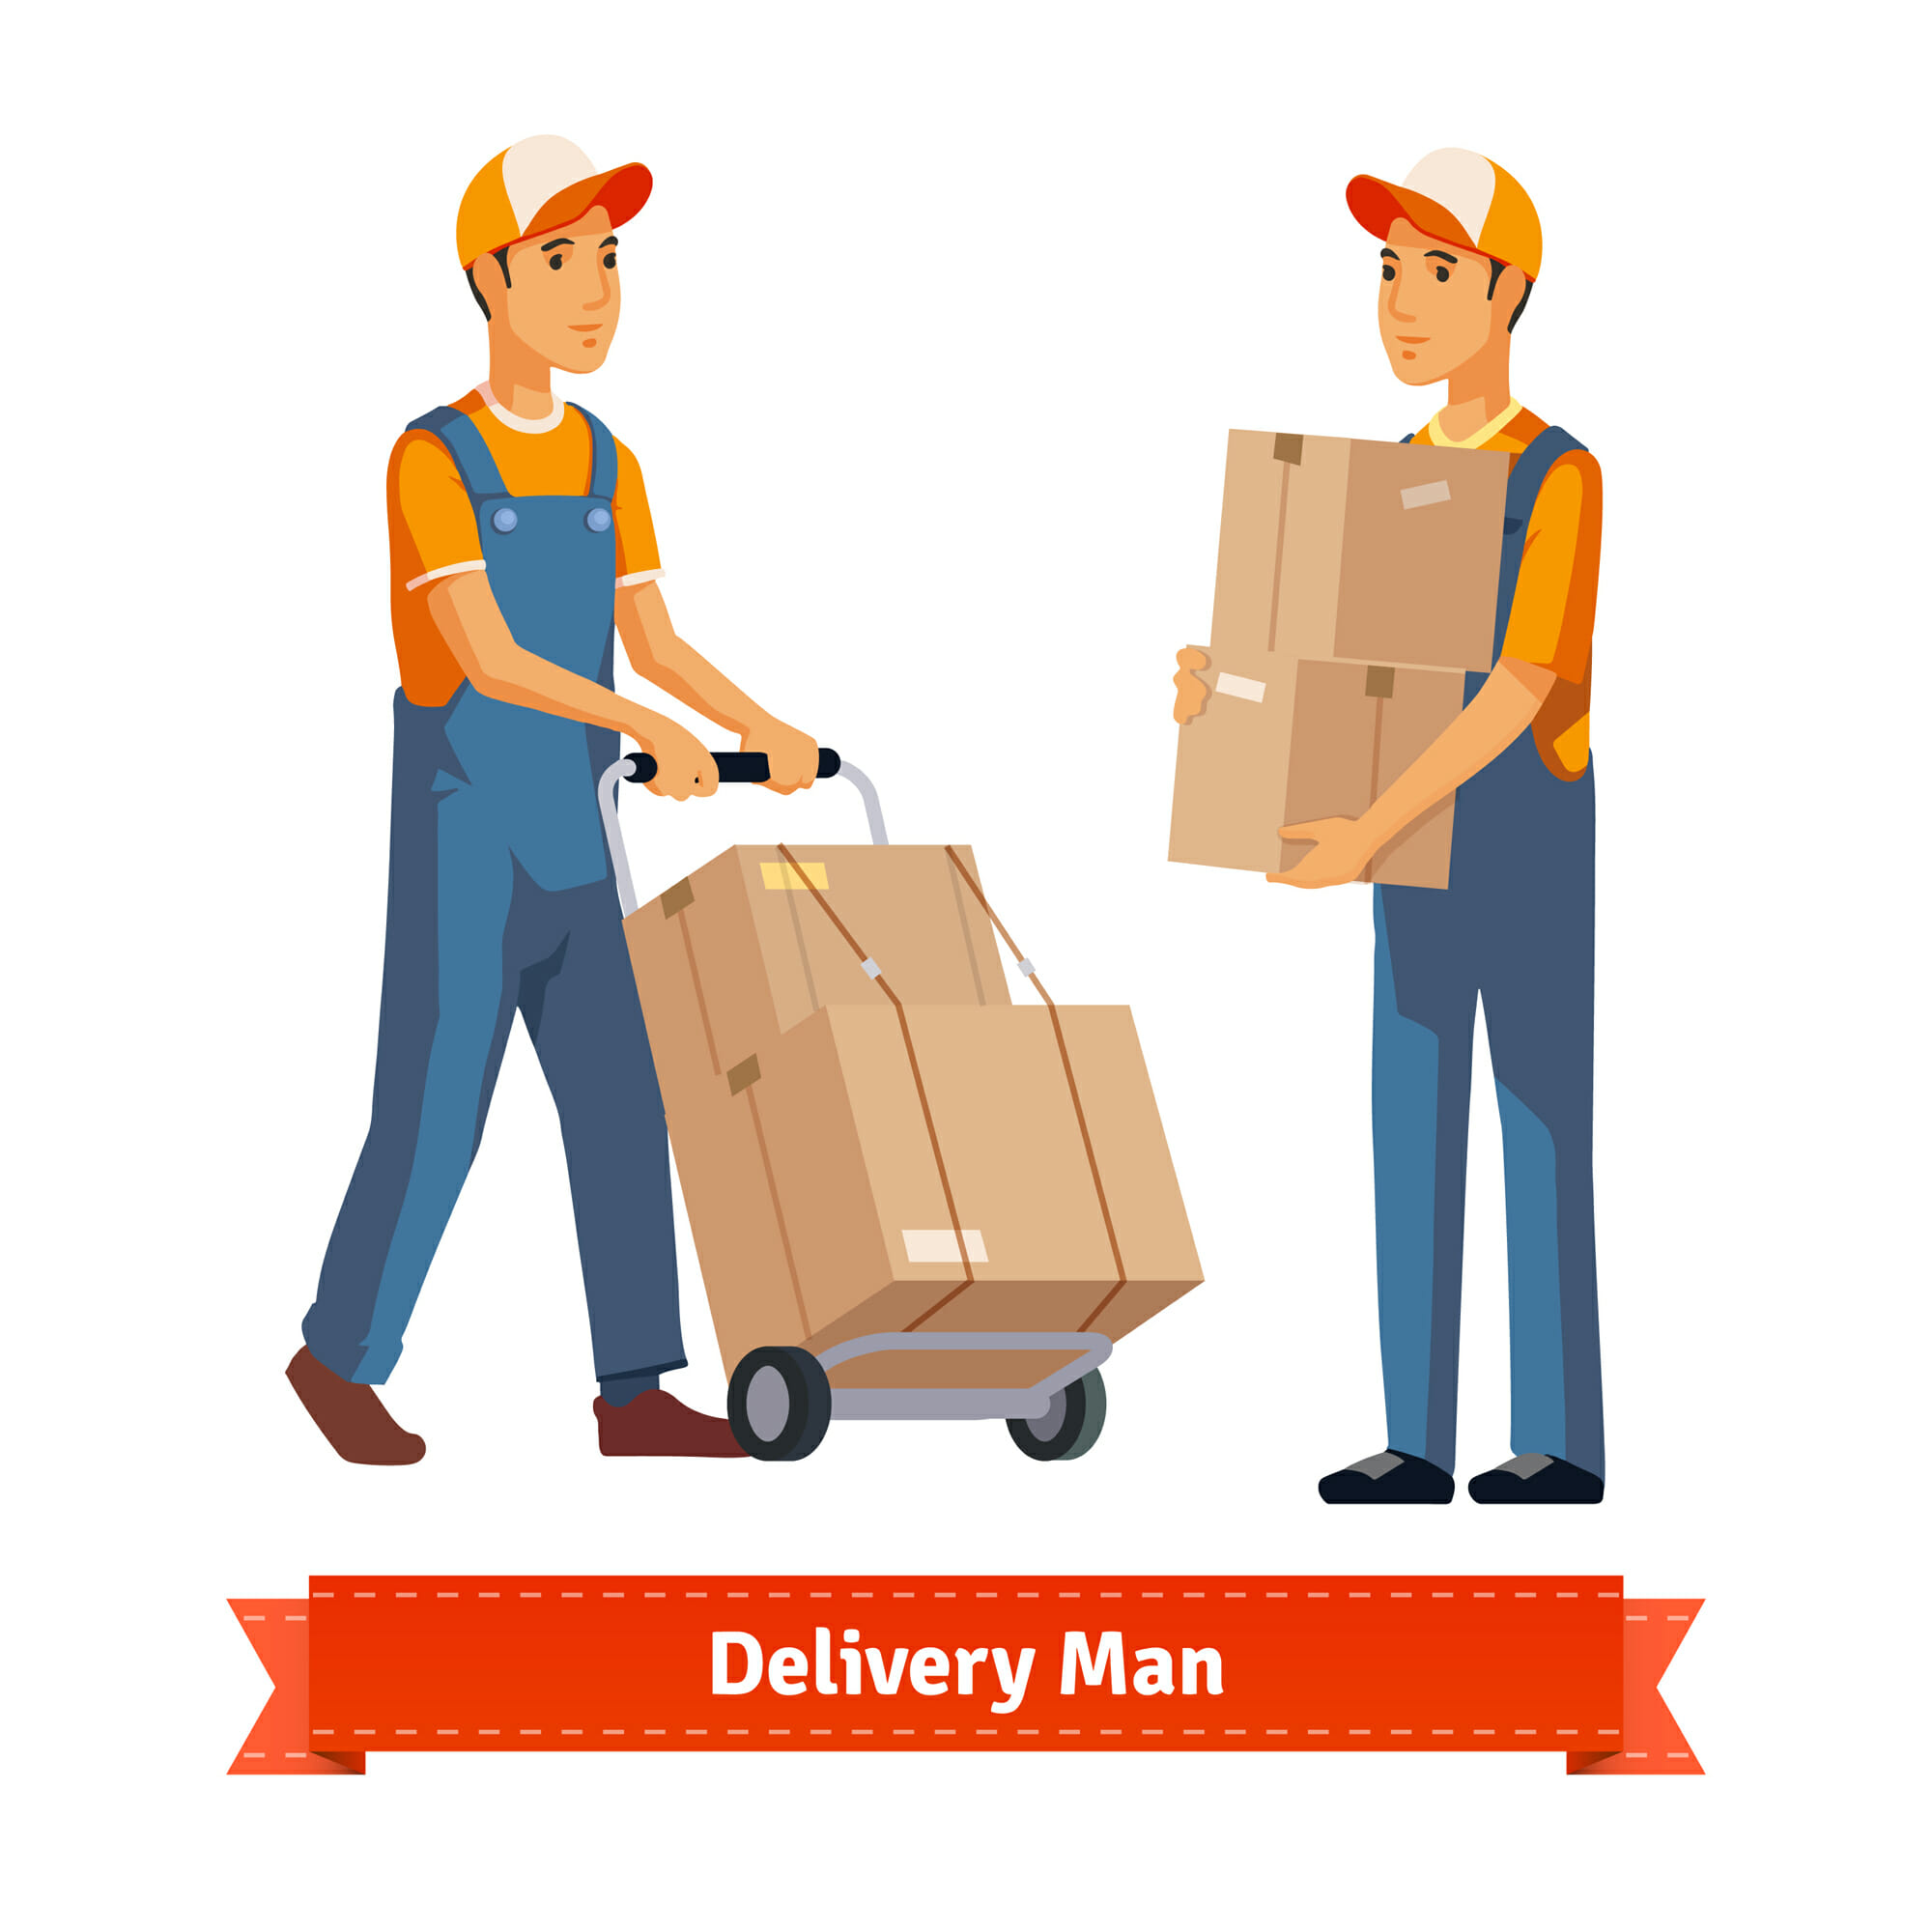 Delivery man with boxes. Flat style illustration. EPS 10 vector.